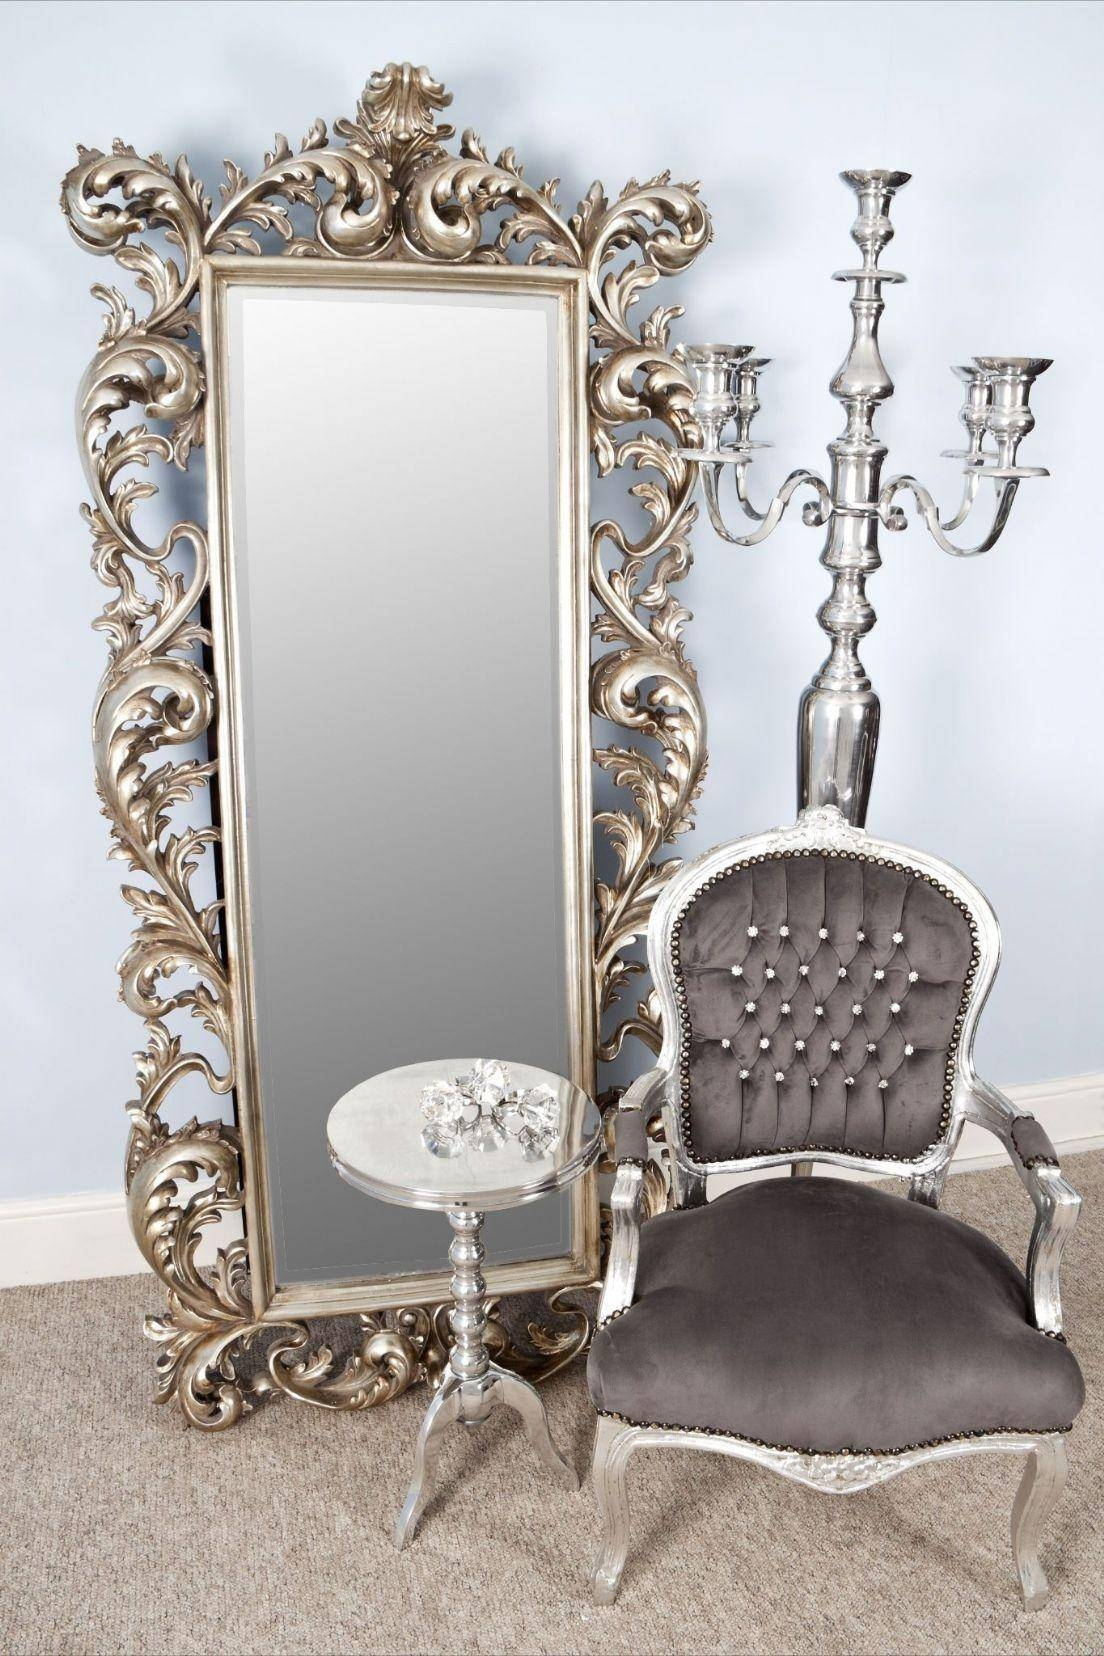 Popular Photo of Large Rococo Mirrors